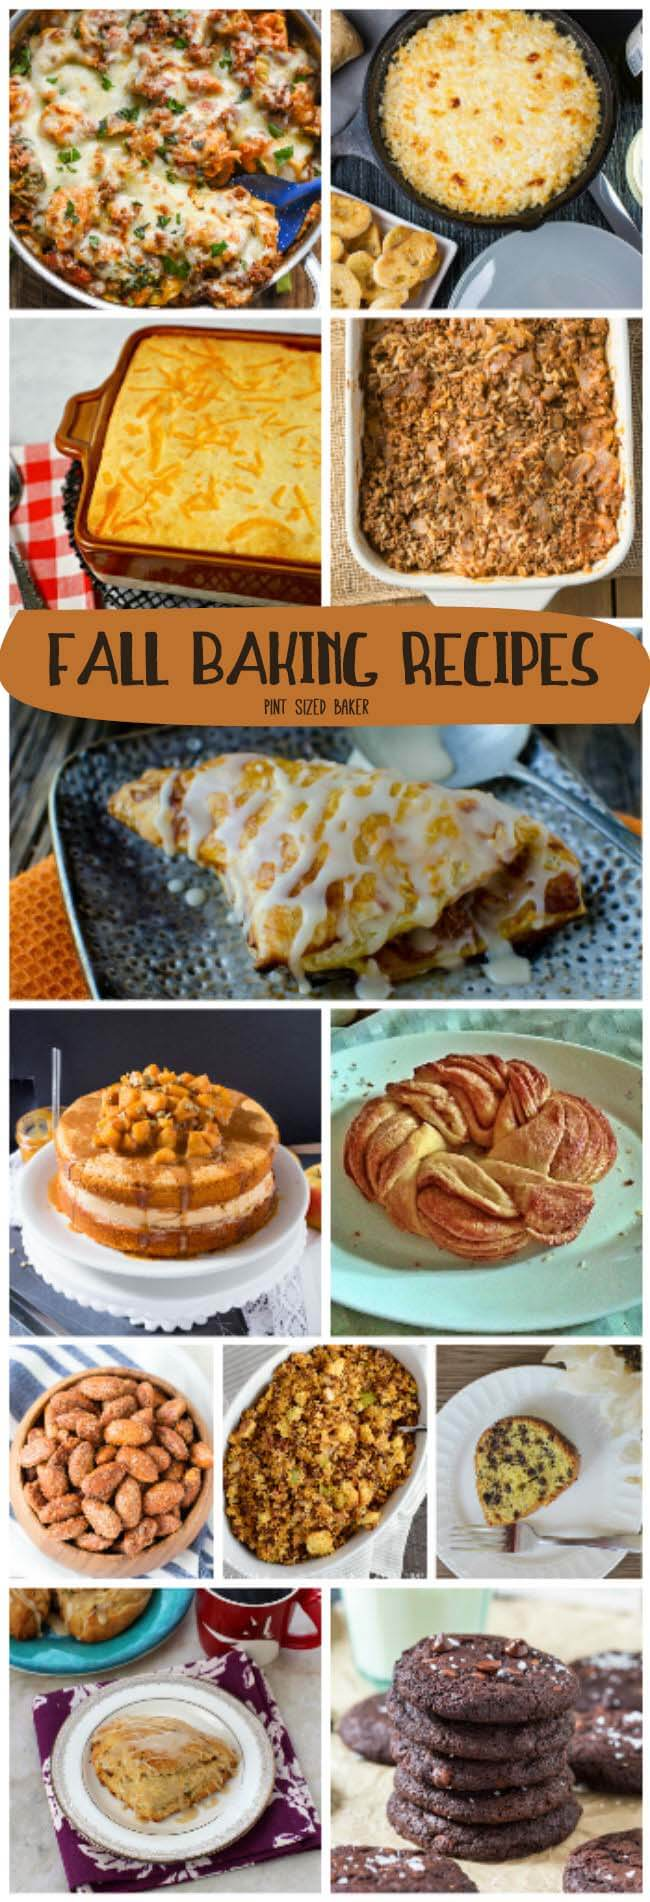 Do the cold, short nights lend themselves to more baking fresh breads, roasted veggies, and casseroles in your household? If so, here's 15 Fall Baking Recipes that are perfect for breakfast, lunch, dinner and dessert!